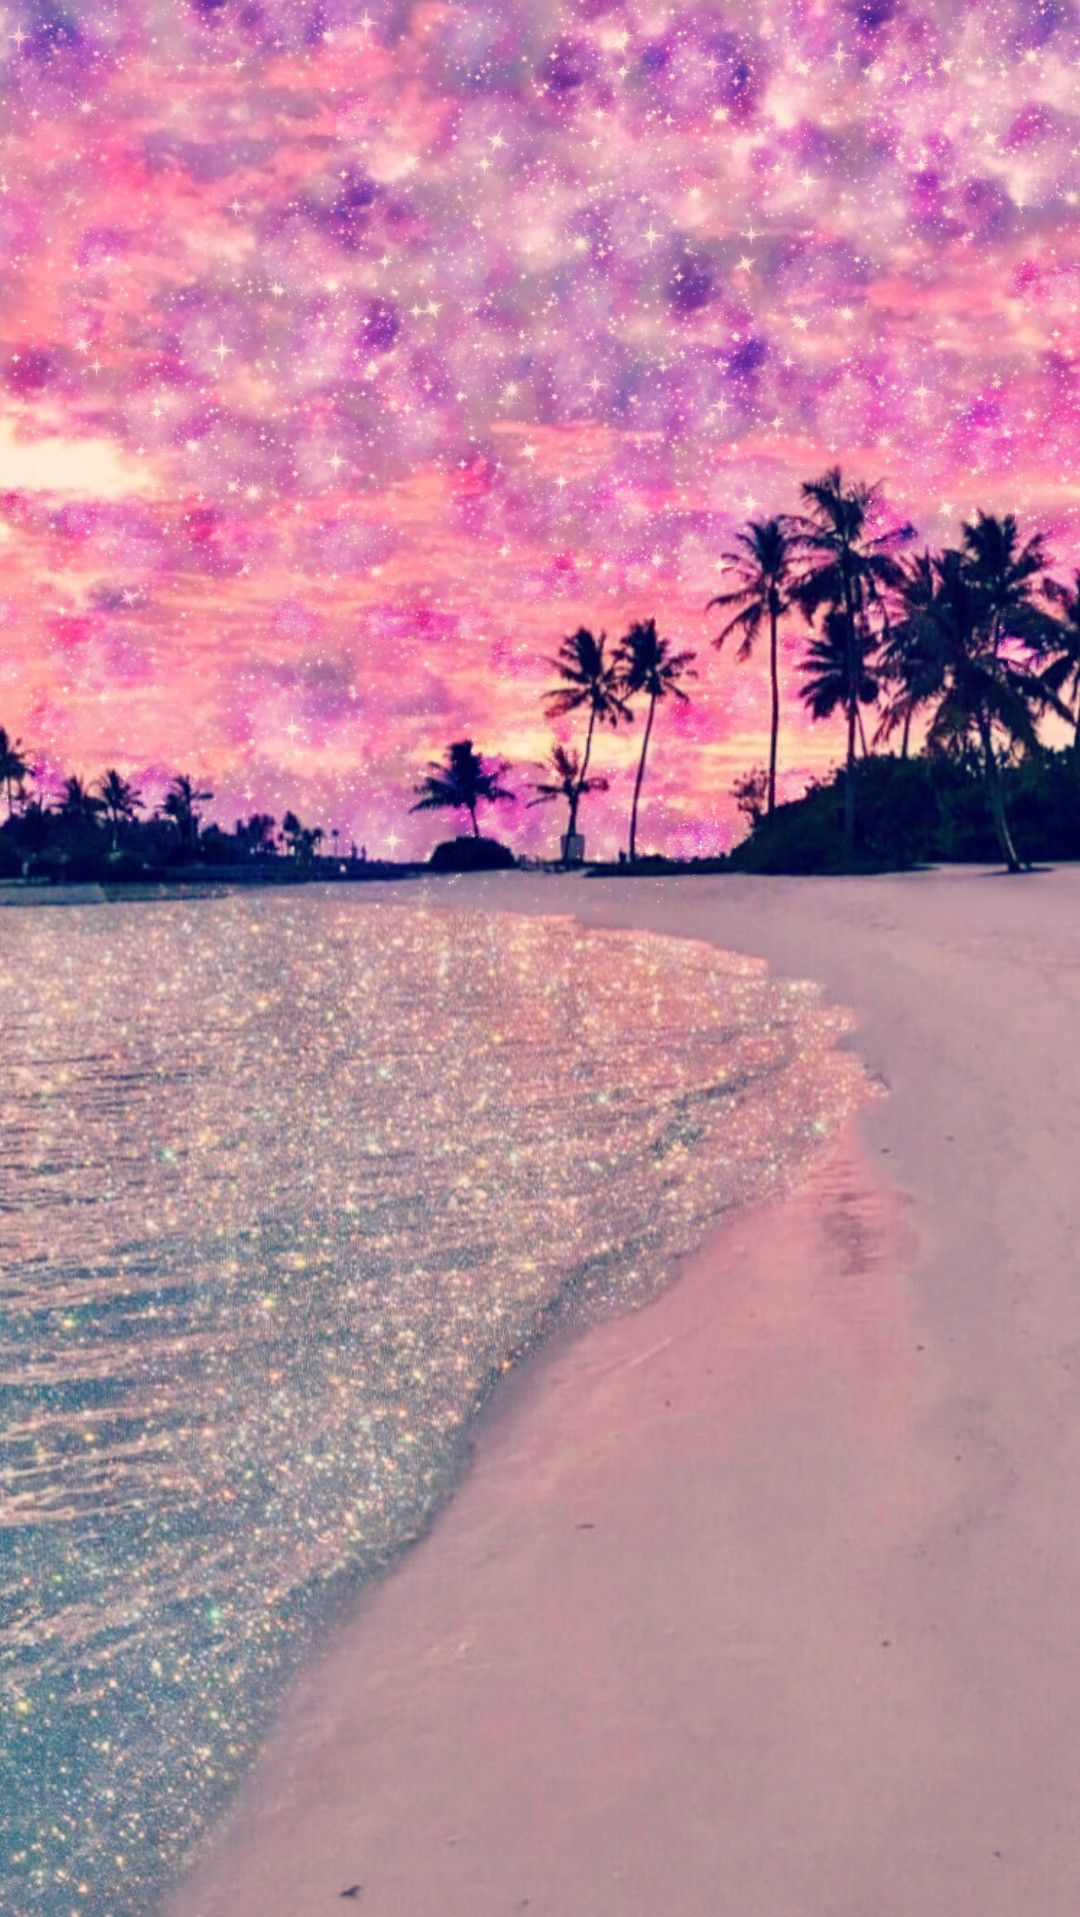 Galaxy Beach, made by me purple sparkly wallpapers